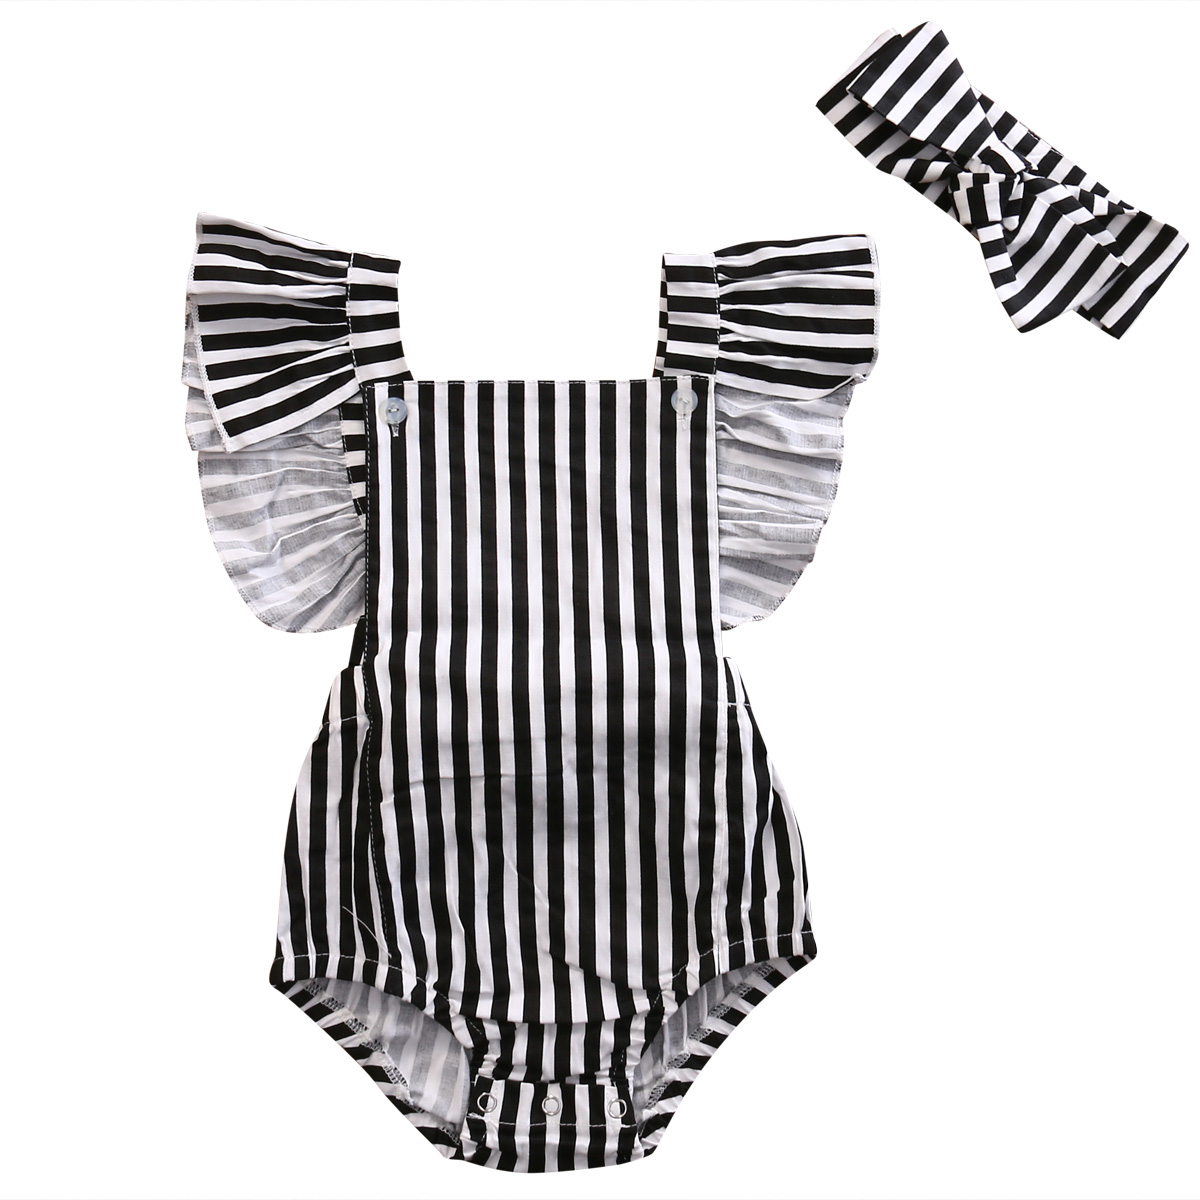 Newborn Infant Baby Clothes Girls Ruffle Sleeve Striped Romper Jumpsuit Handband 2pcs Outfits Summer Girls Clothing summer newborn infant baby girl romper short sleeve floral romper jumpsuit outfits sunsuit clothes